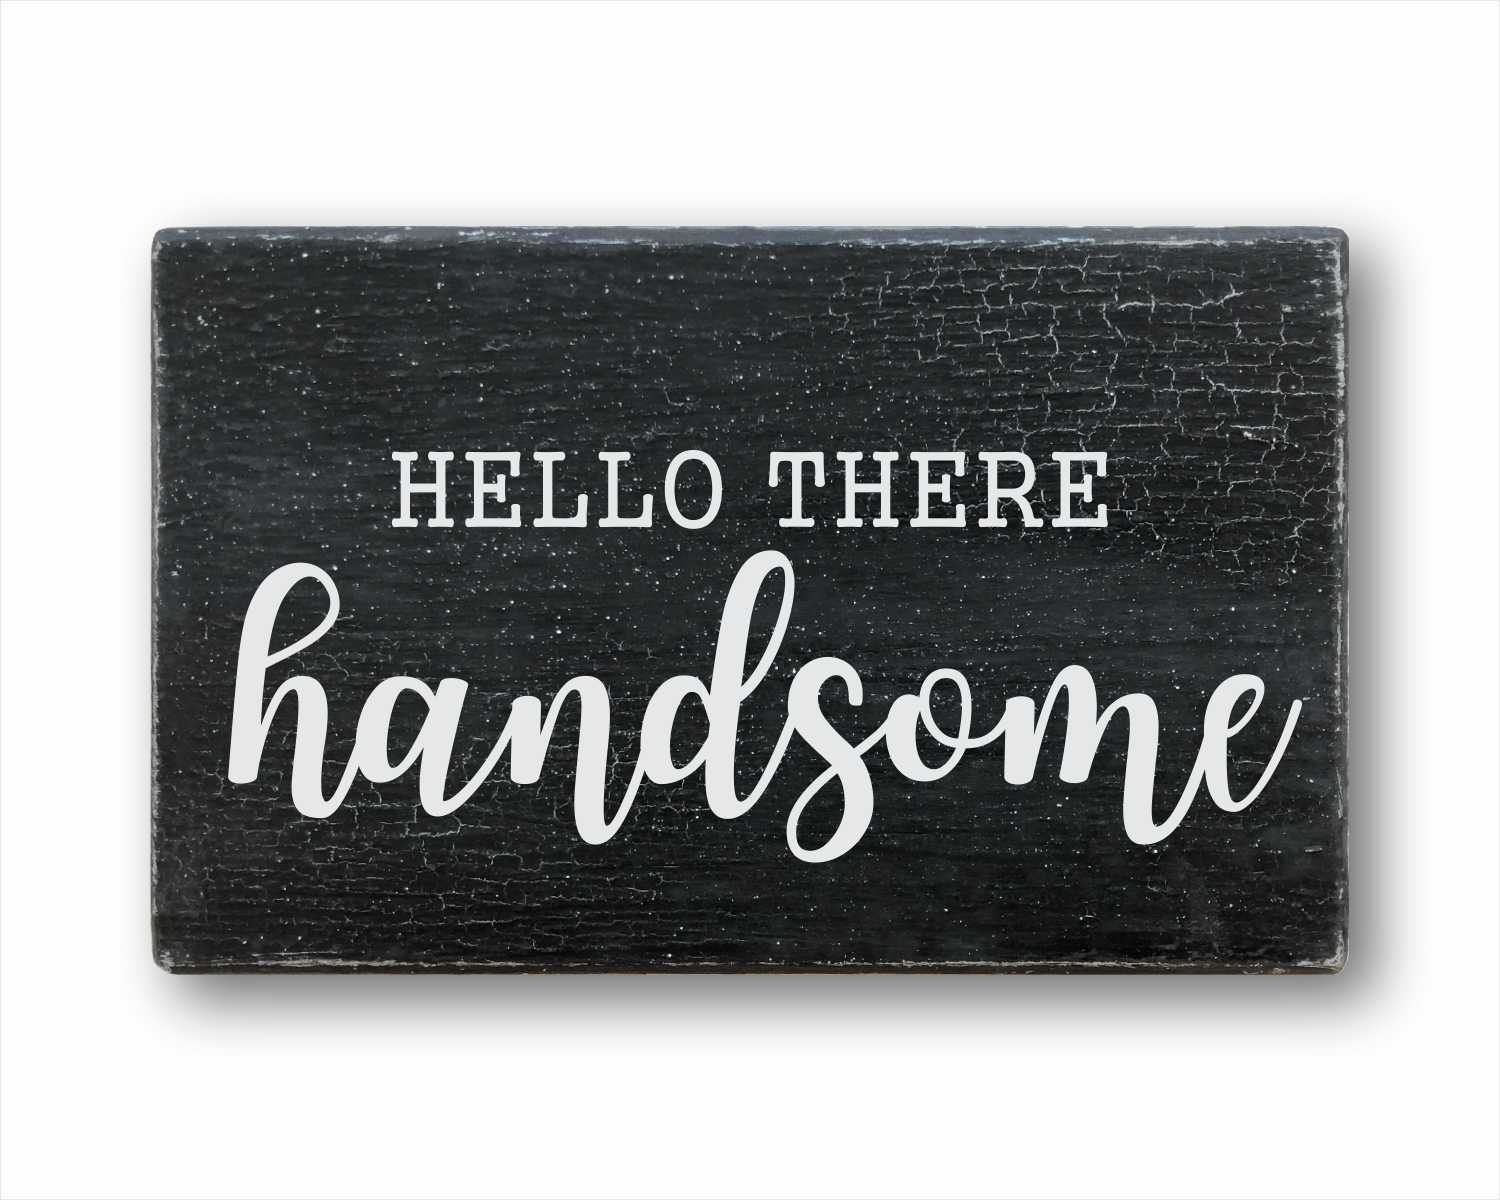 hello there handsome wood farmhouse style box sign for sale